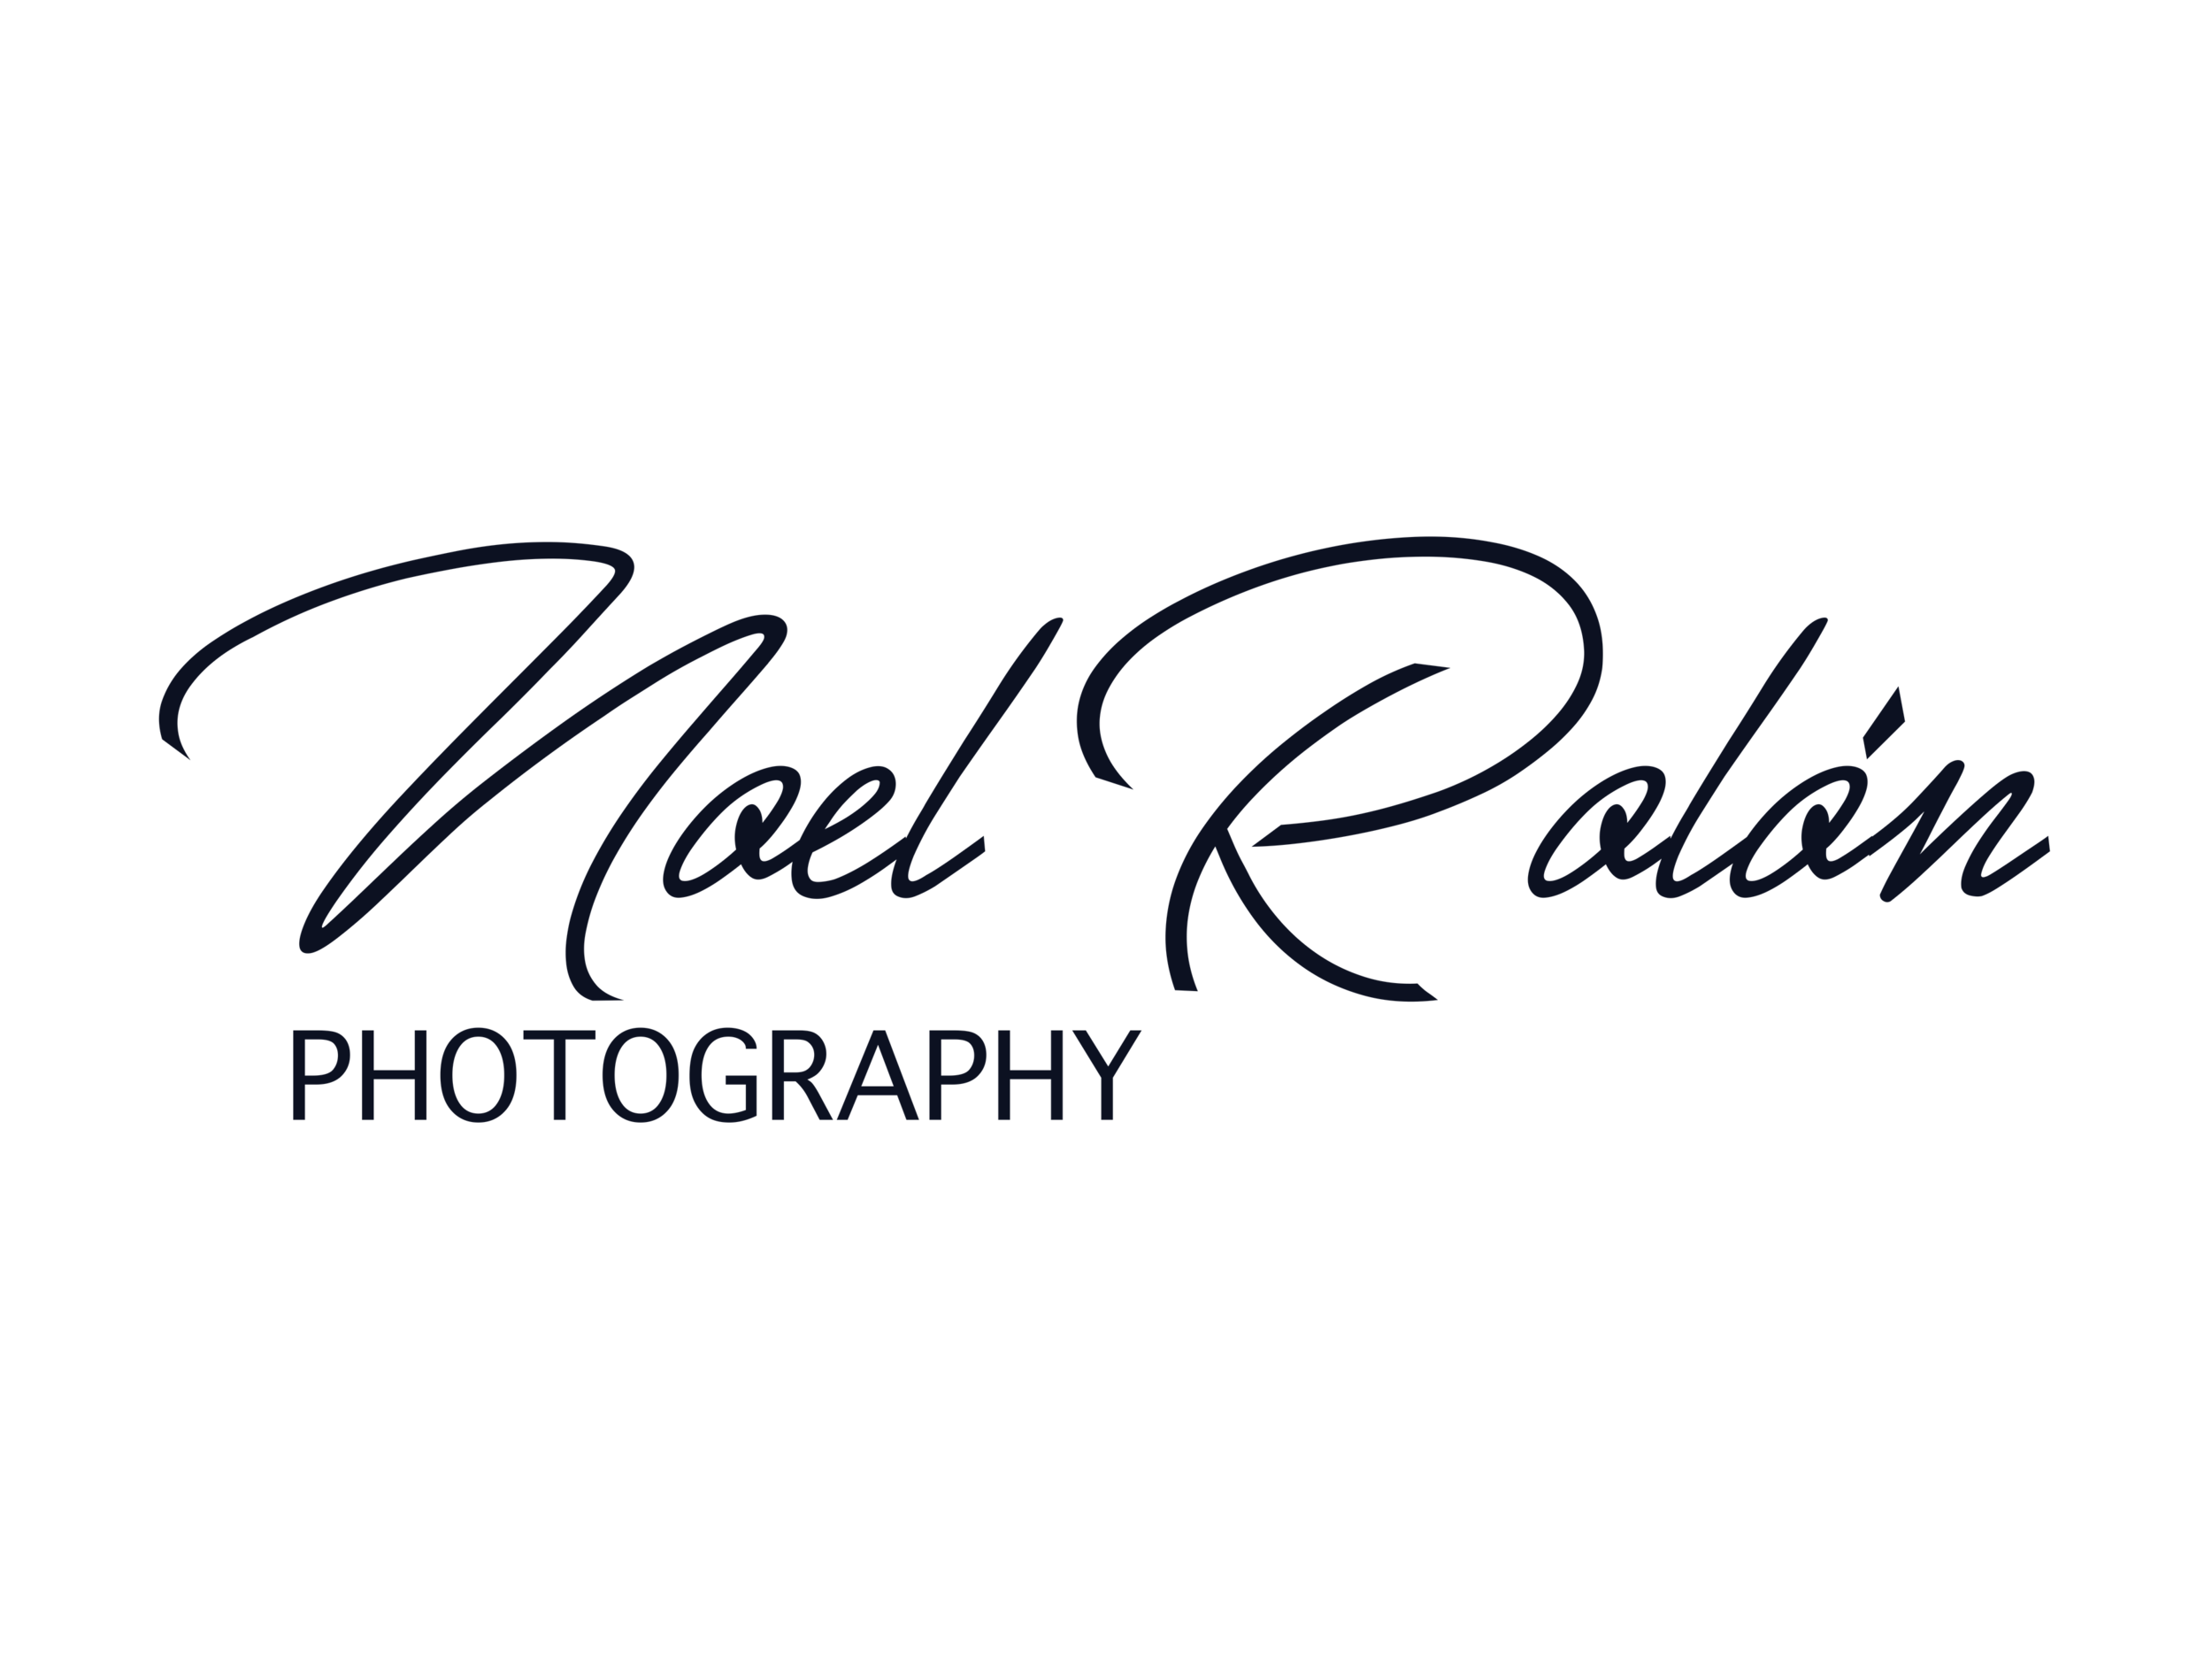 noel rolon photo